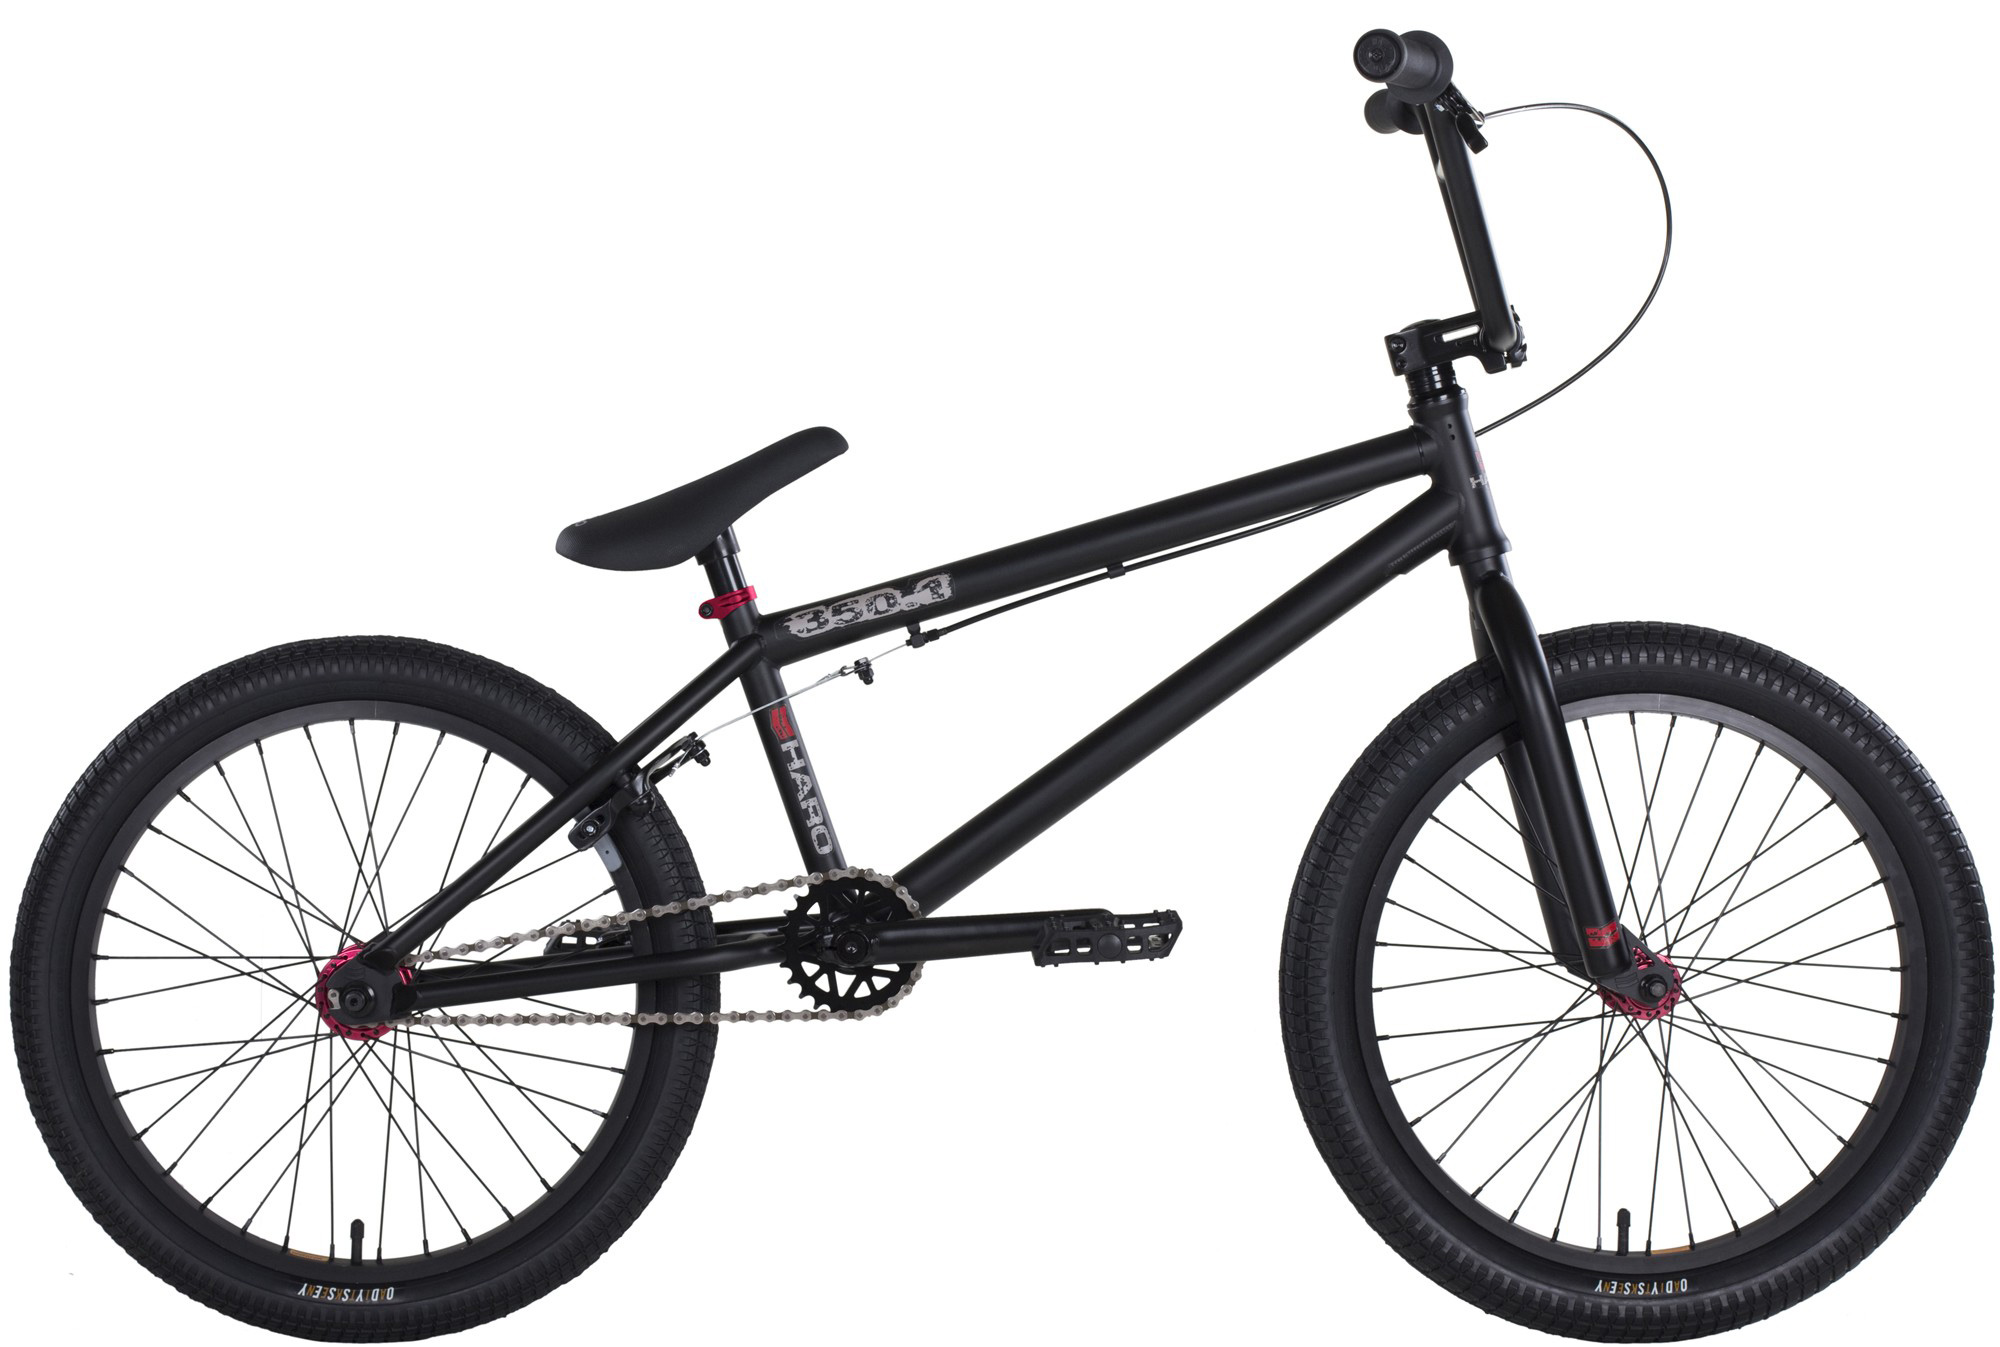 "BMX Our 350 series uses the same frame and fork set up as the 300 series, but it steps up the game with an Alienation double-wall Black Sheep rear rim, sealed rear hub, and Odyssey Aitken tires, front and rear. Choose from a super clean and light .1 platform or go with a set of pegs and a gyro on the .2 for almost limitless trick variations.Key Features of the Haro 350.1 20.5In BMX Bike: Chromoly down tube w/internal HT & mid BB 20.5"" & 21"" TT 3 pc chromoly 8 spline cranks (175mm) Haro ""Recycled"" plastic pedals 36 spoke sealed alloy rear hub w/ Alienation double-wall rear rim and single-wall front rim Odyssey Aitken 20""x2.25"" front/20""x1.95"" rear Hi-ten 8"" rise bars (20.5"") or 8.25"" (21"") Alloy front load stem 25/9 gearing - $339.95"